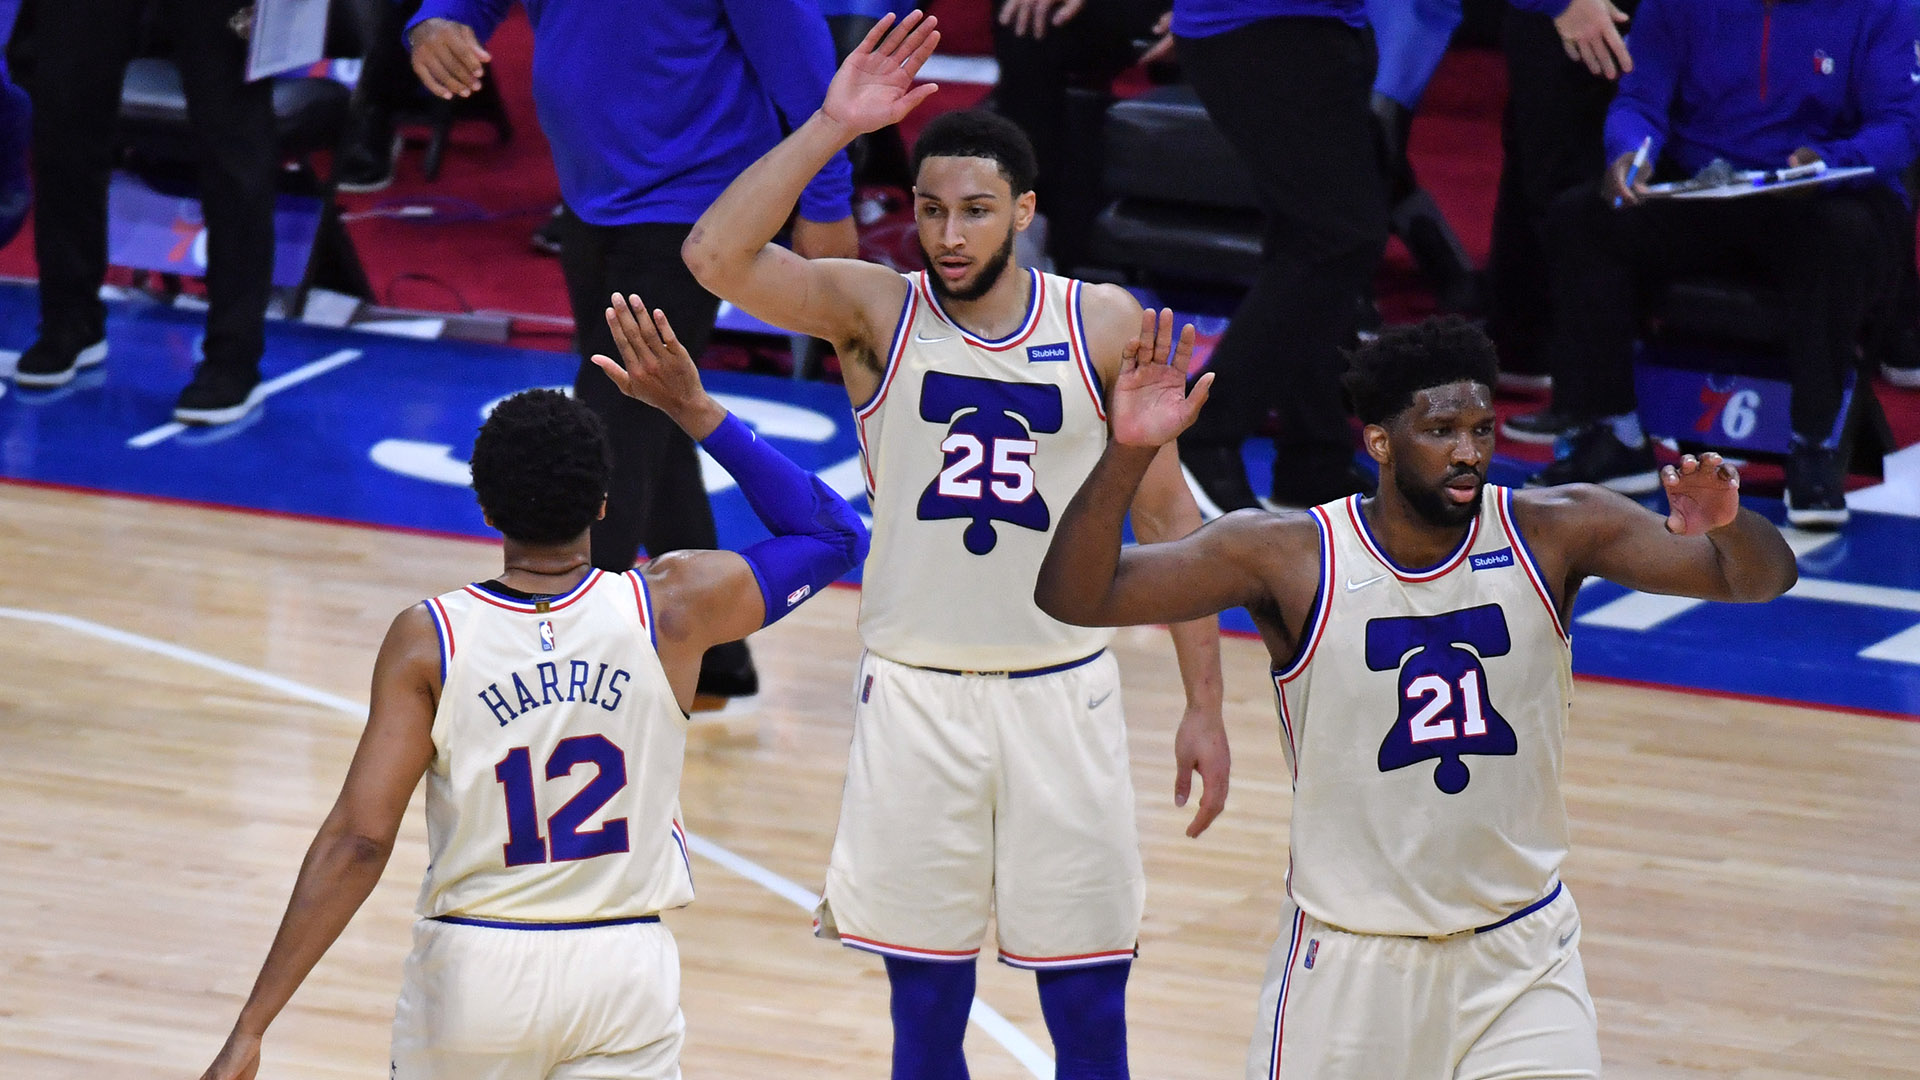 Power Rankings, Week 18: Sixers surge to No. 1 spot as season enters final month